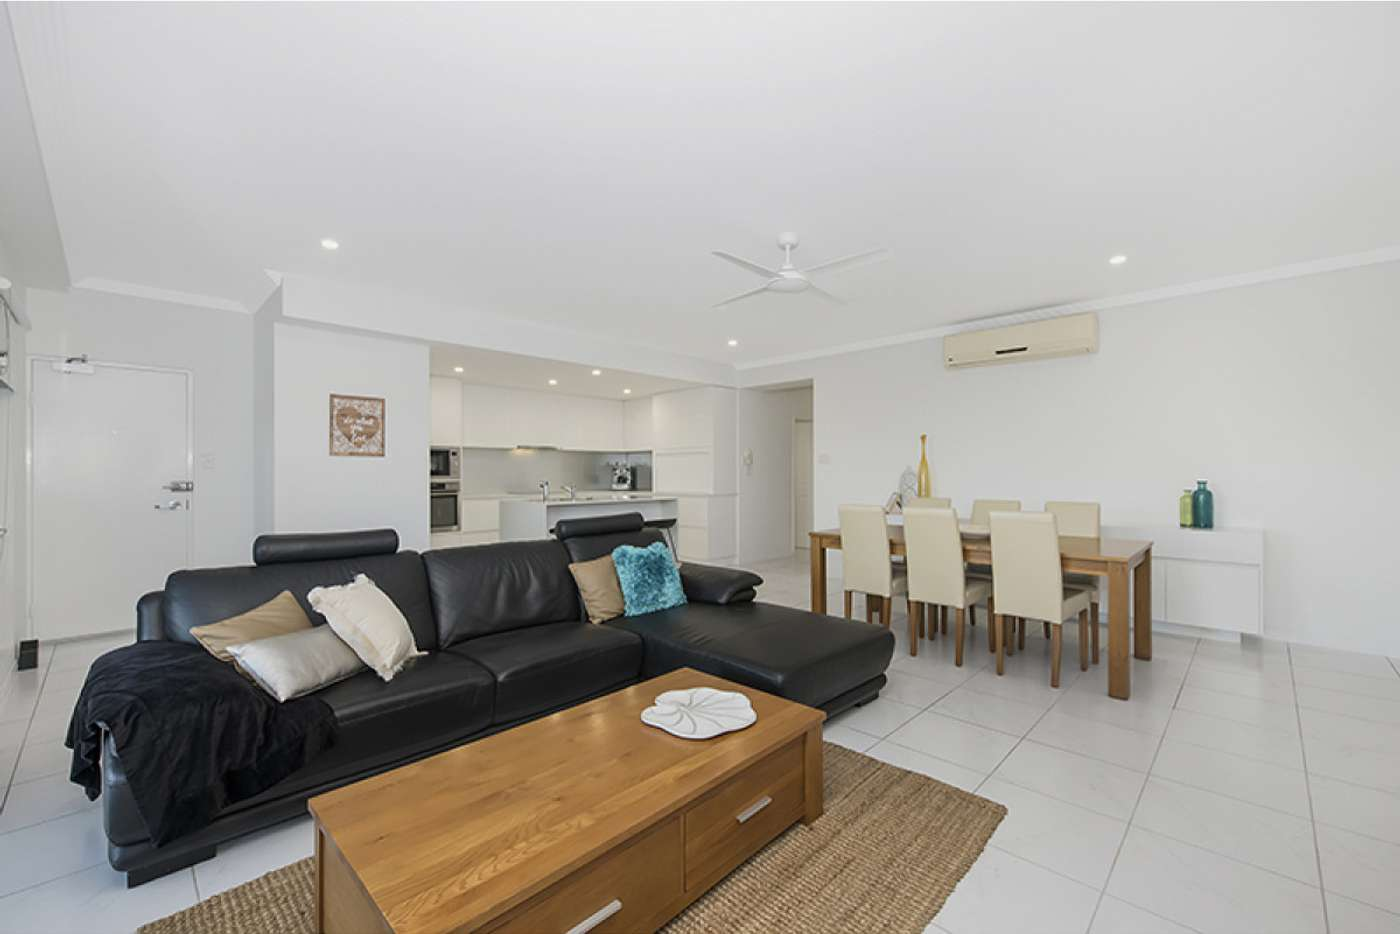 Sixth view of Homely apartment listing, 6/61 The Strand, North Ward QLD 4810